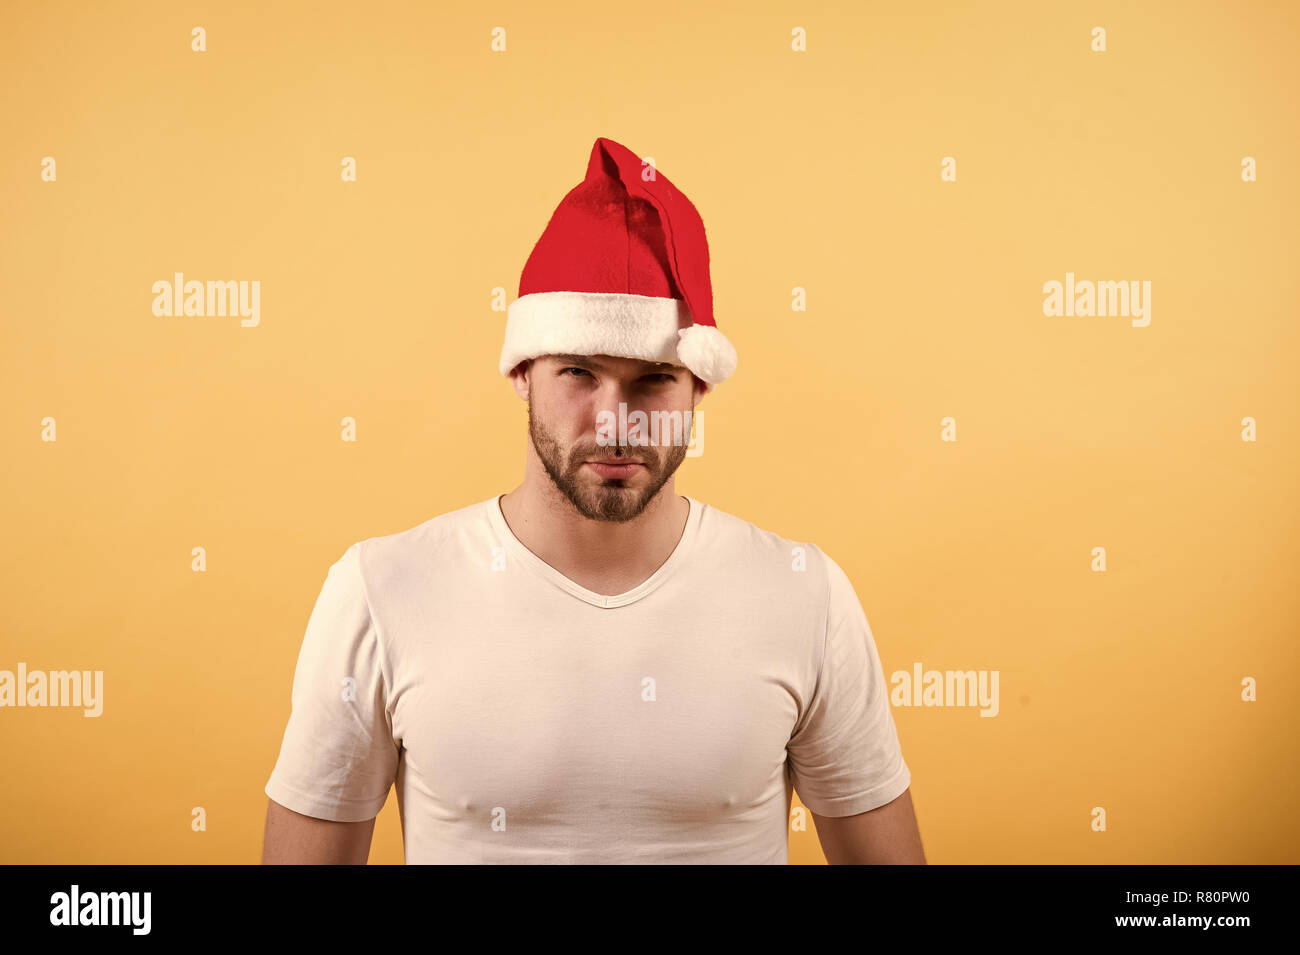 ba9f4ba3b2715 Santa claus fashion. Man santa in white tshirt on orange background.  Christmas and new year party. Macho with bearded face in red xmas hat.